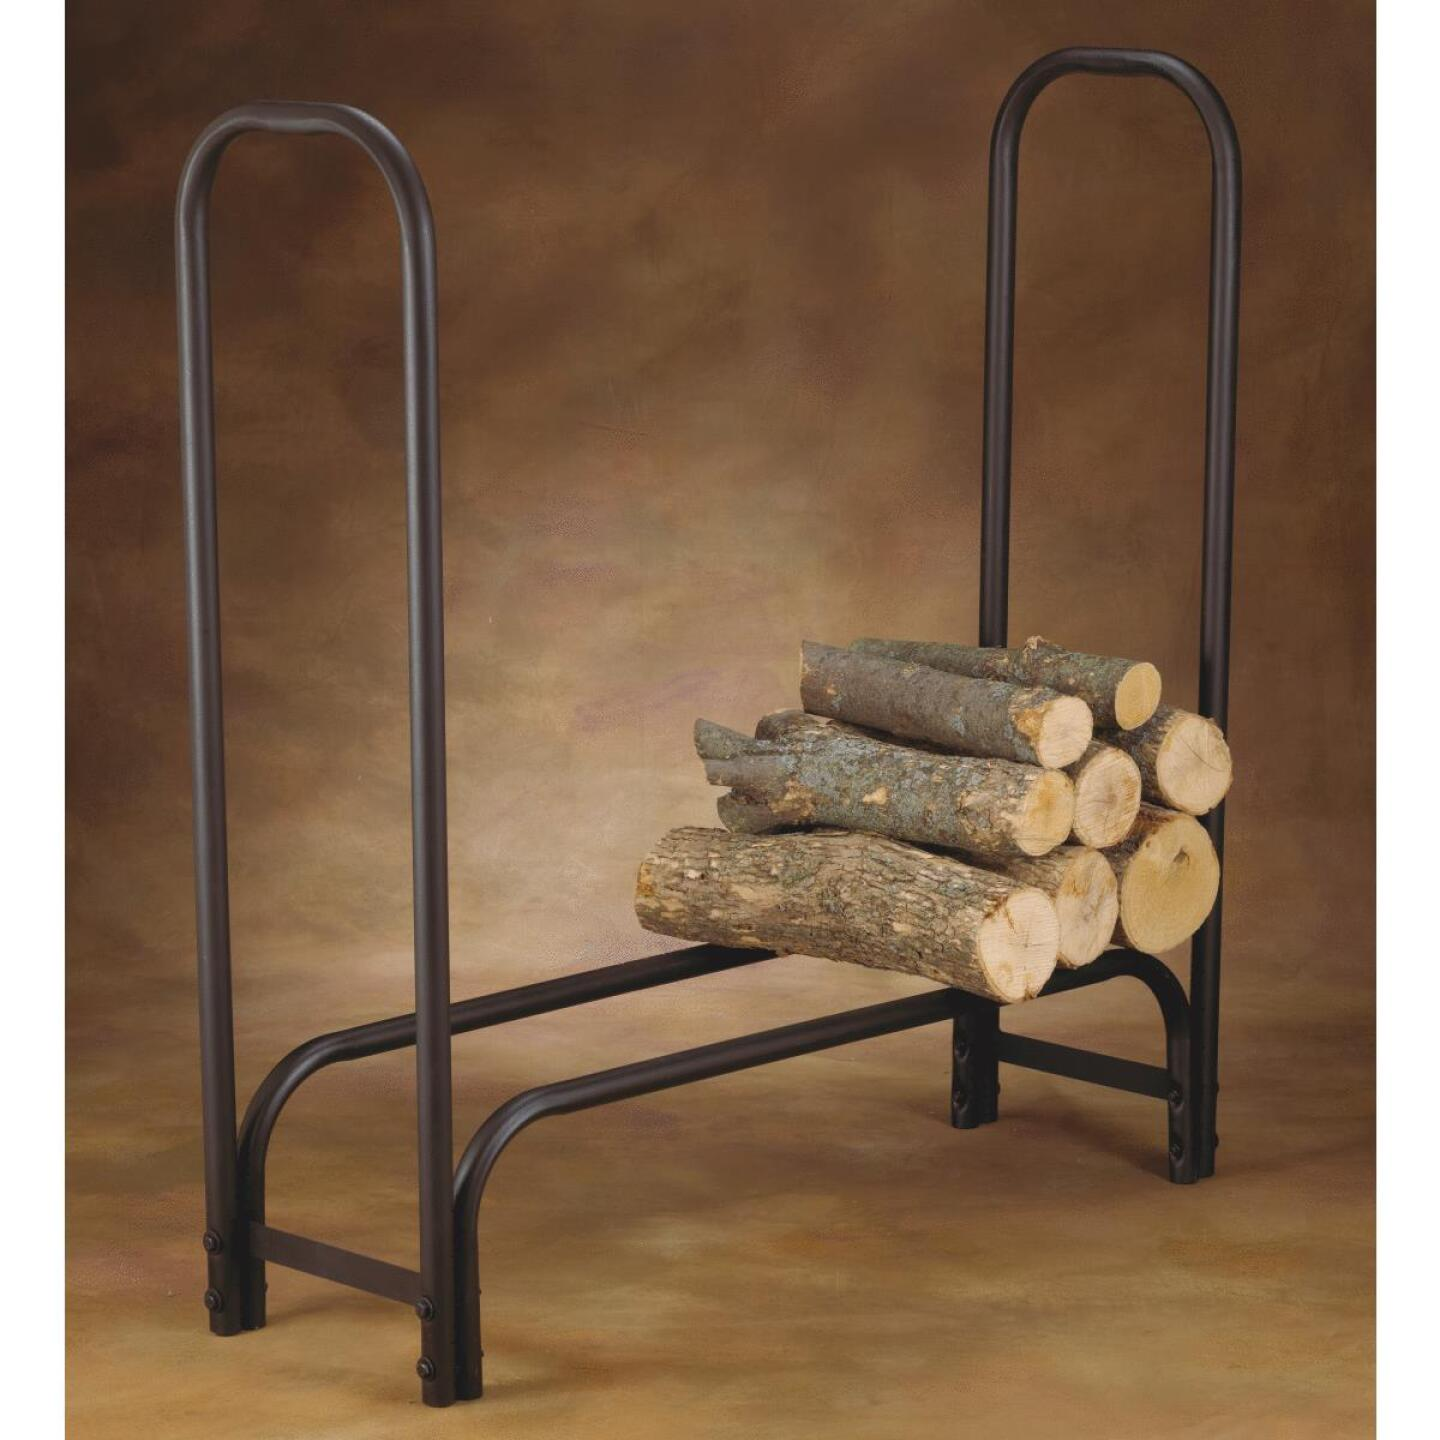 Home Impressions 4 Ft. Black Tubular Log Rack Image 3